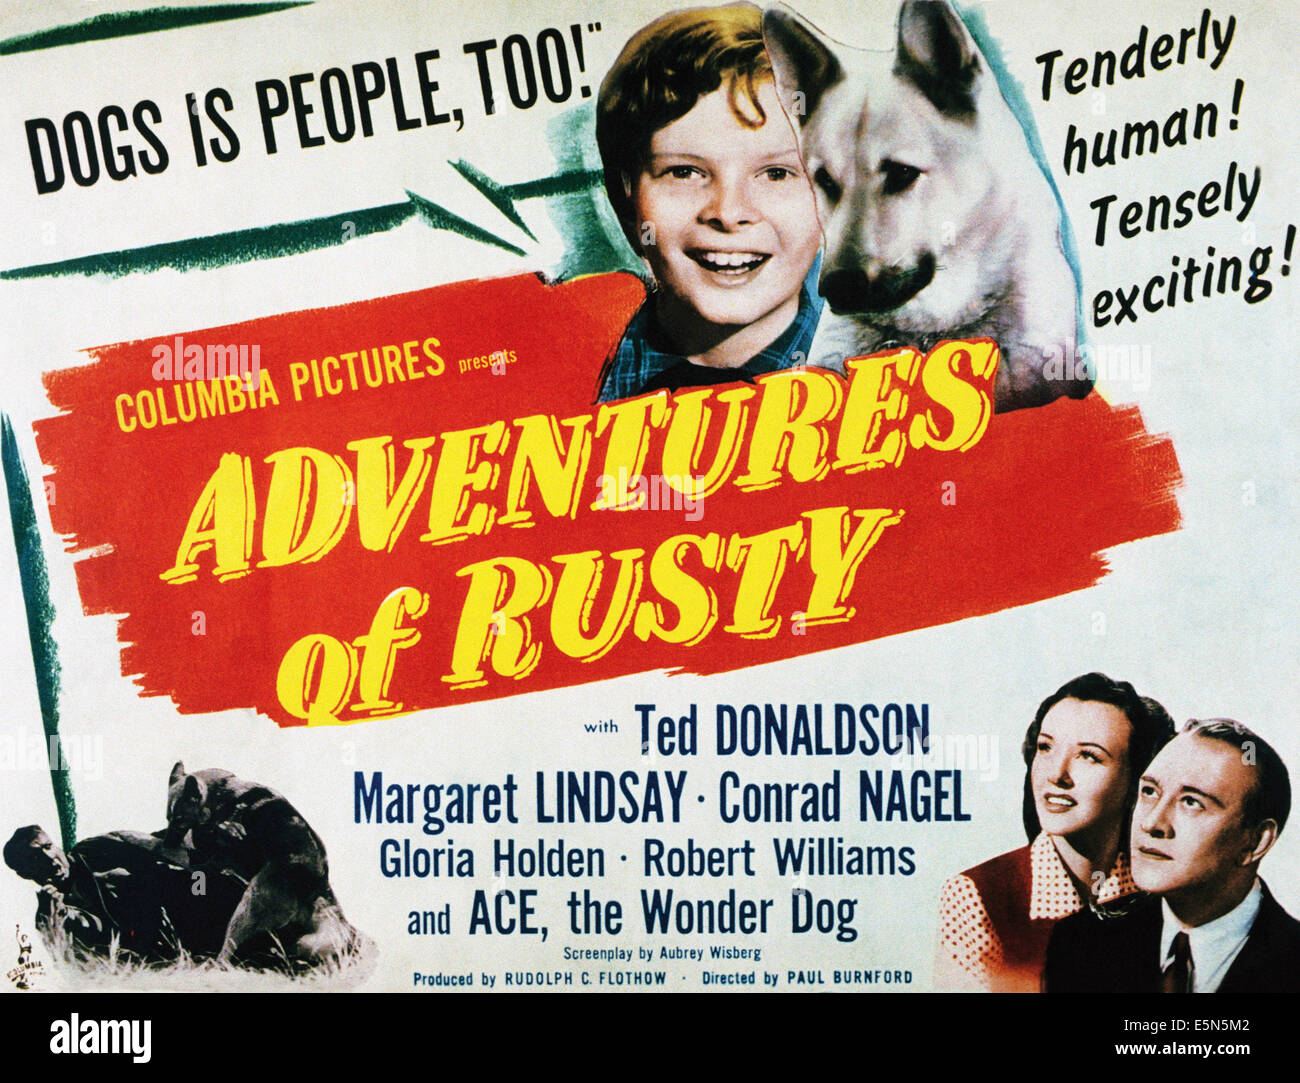 the-adventures-of-rusty-from-left-ted-do